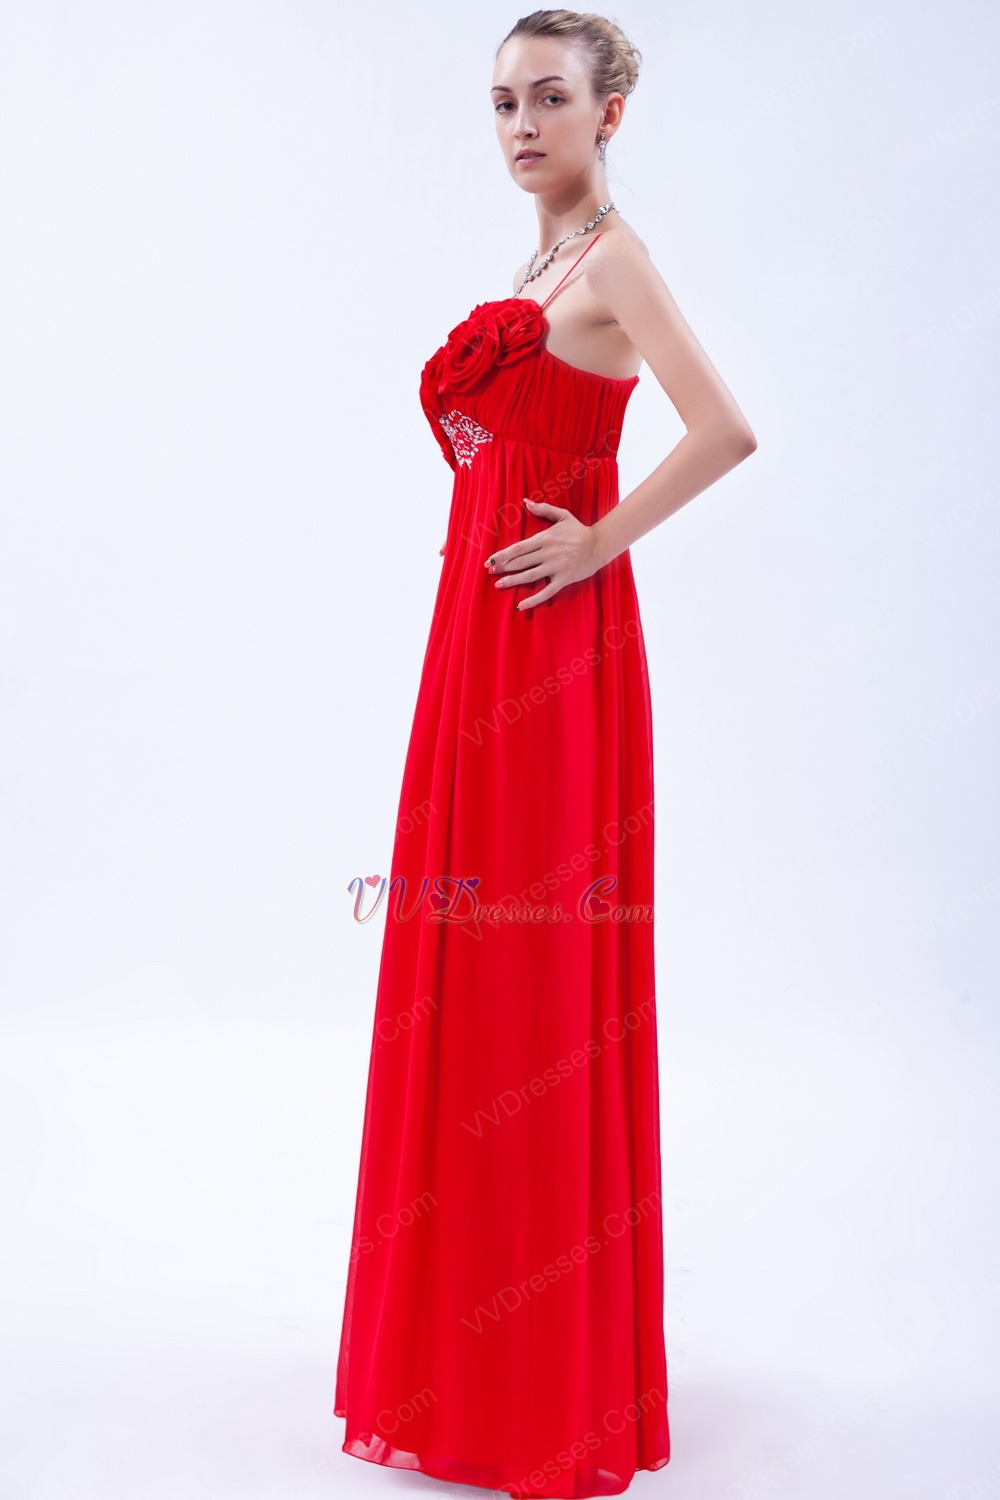 Scarlet Red Bridesmaid Dresses - How To Look Good 2017-2018